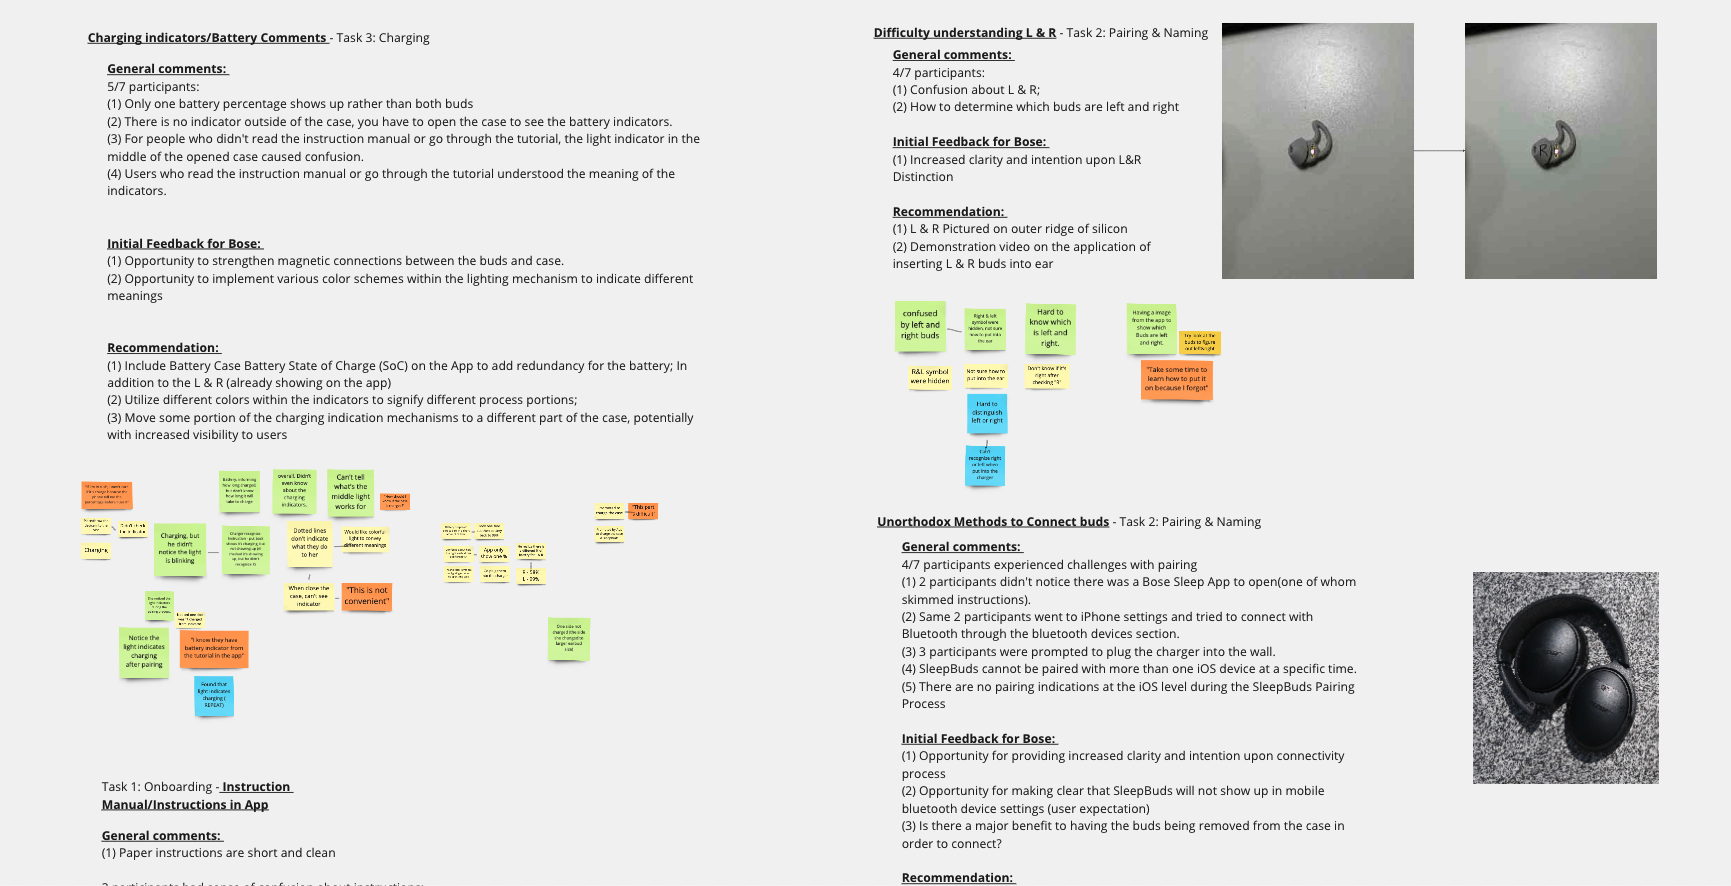 Notes from research, pictures of Bose devices, and post it notes.